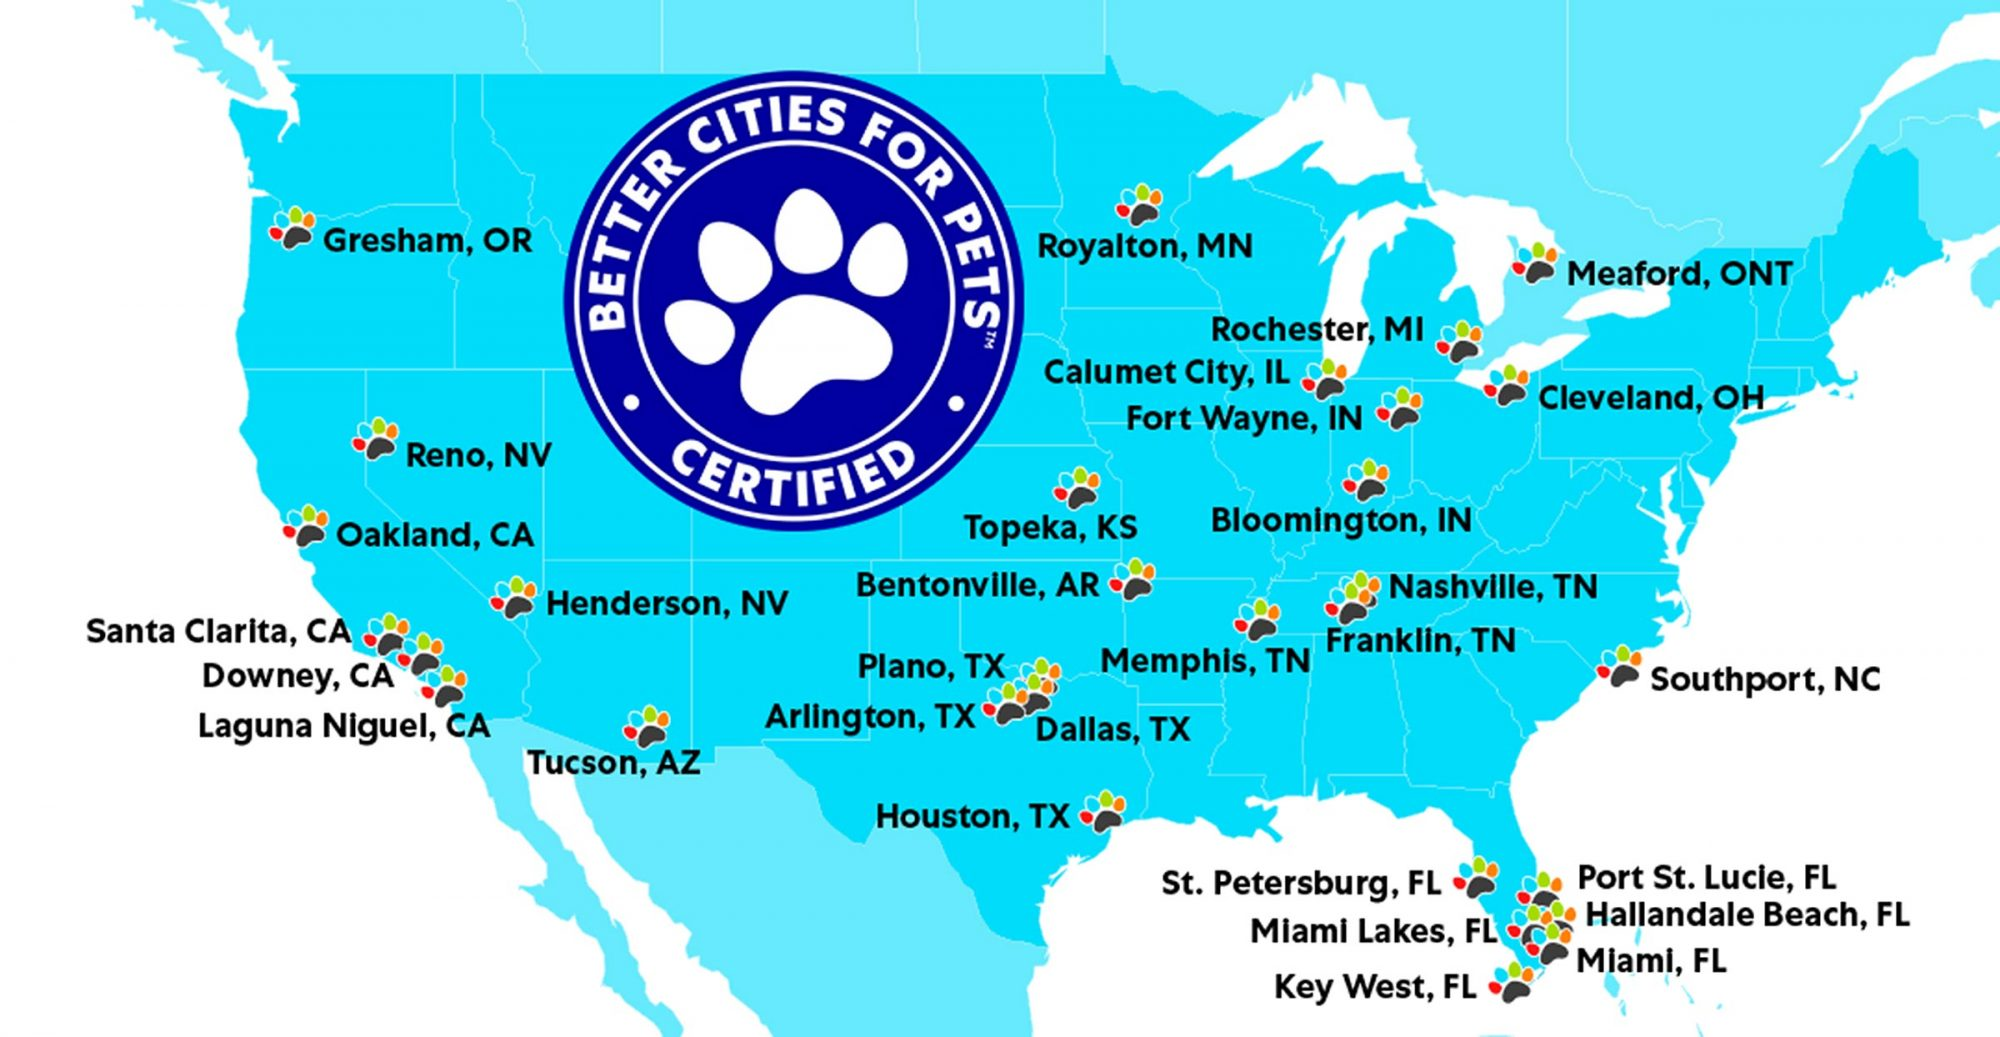 Better cities for pets nashville